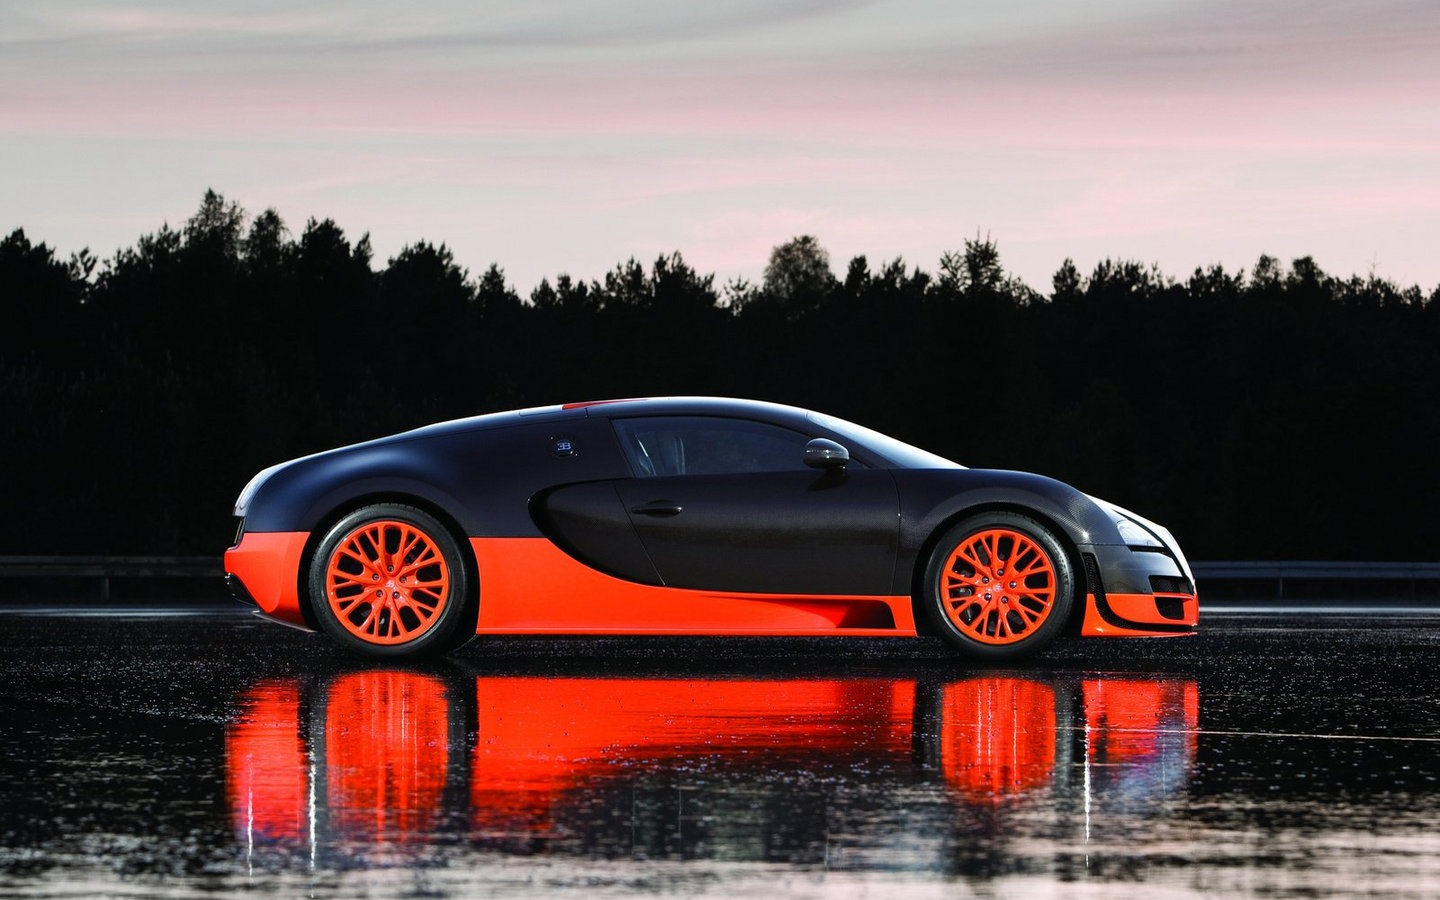 bugatti veyron super sport gold edition 2011 Bugatti Veyron Super Sport Wallpapers 1440×900 | Hot Cars Zone